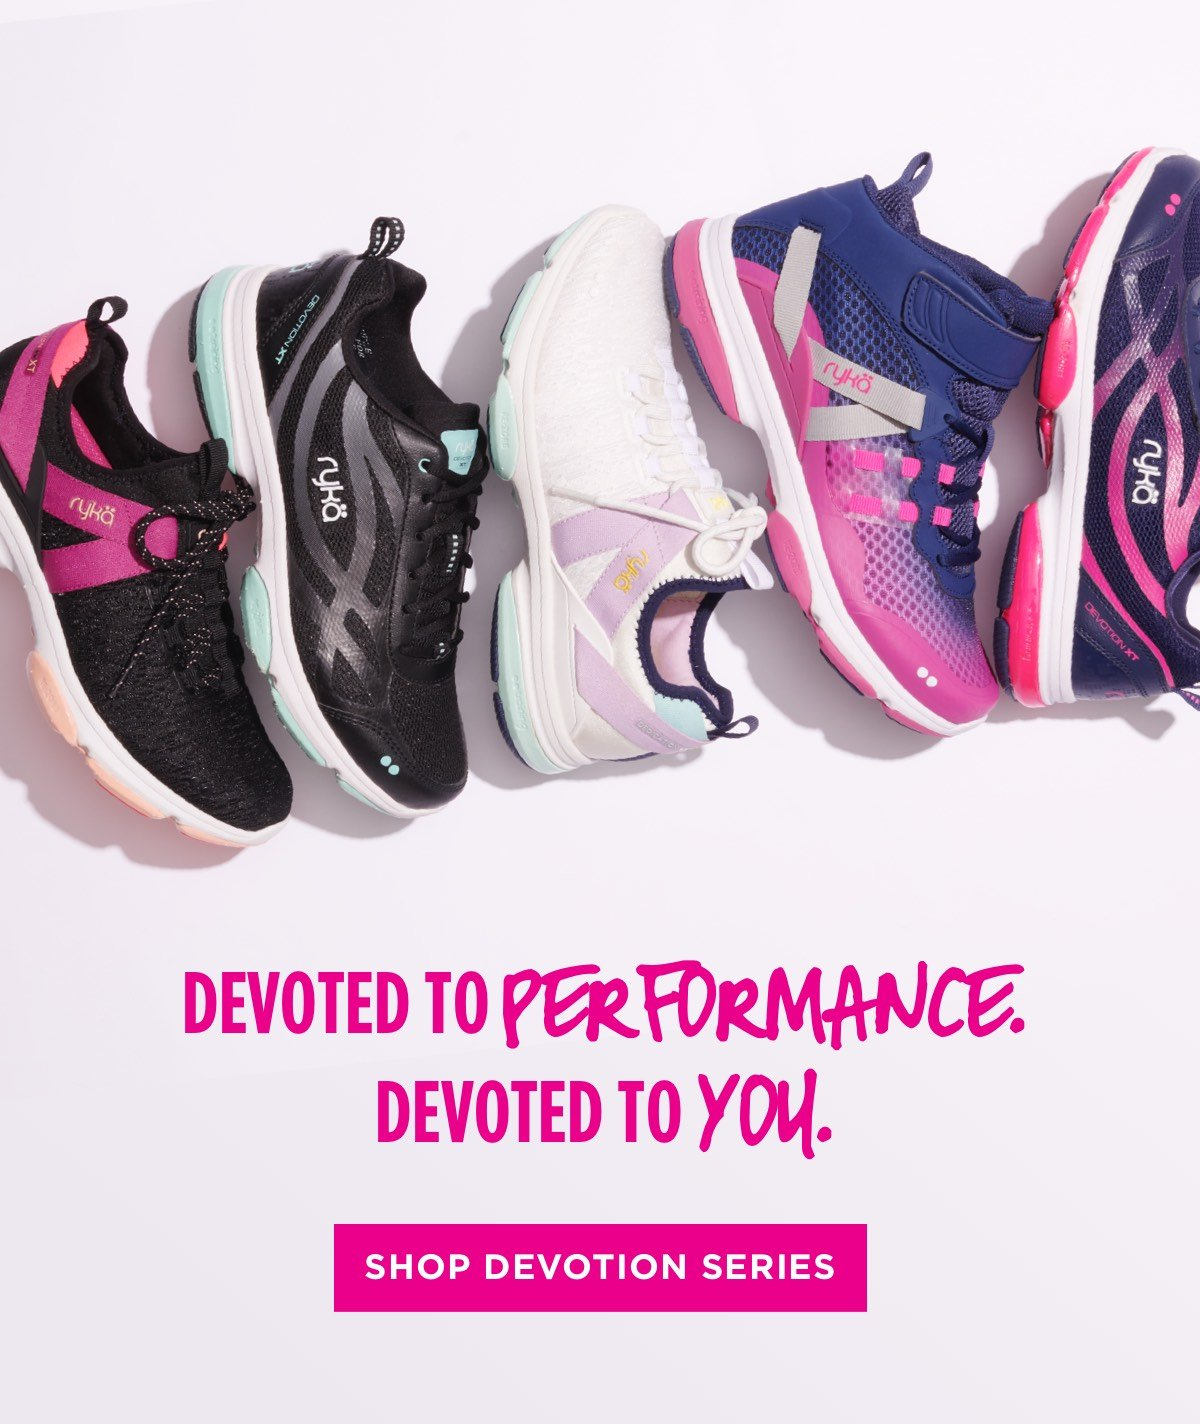 Devoted to performance. Devoted to you. SHOP DEVOTION SERIES